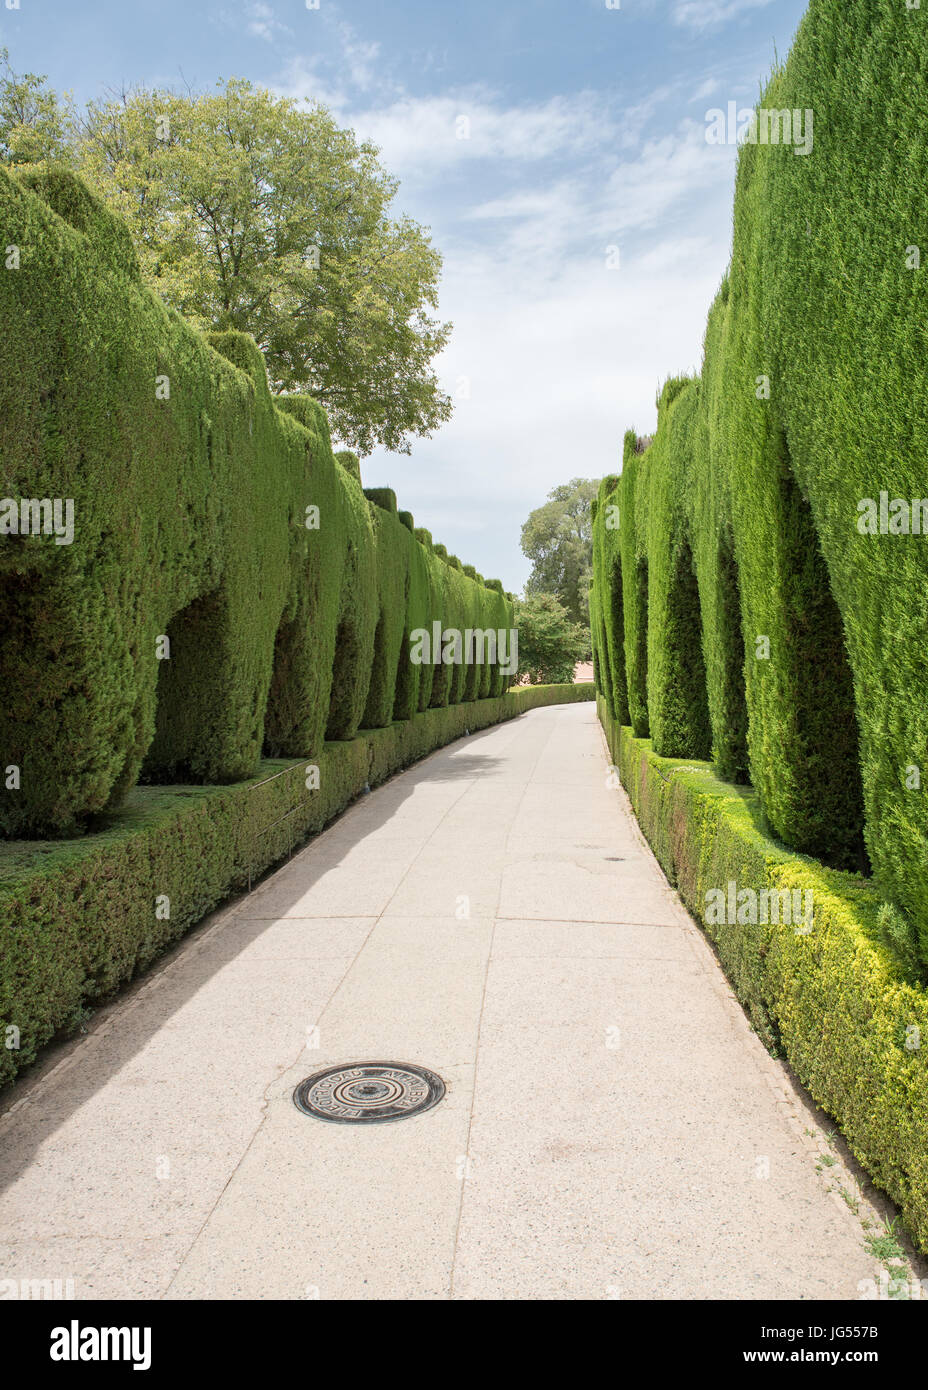 Green Cippress lined walkway at the Alhambra Palace and fortress located in, Granada, Andalusia, Spain. Stock Photo